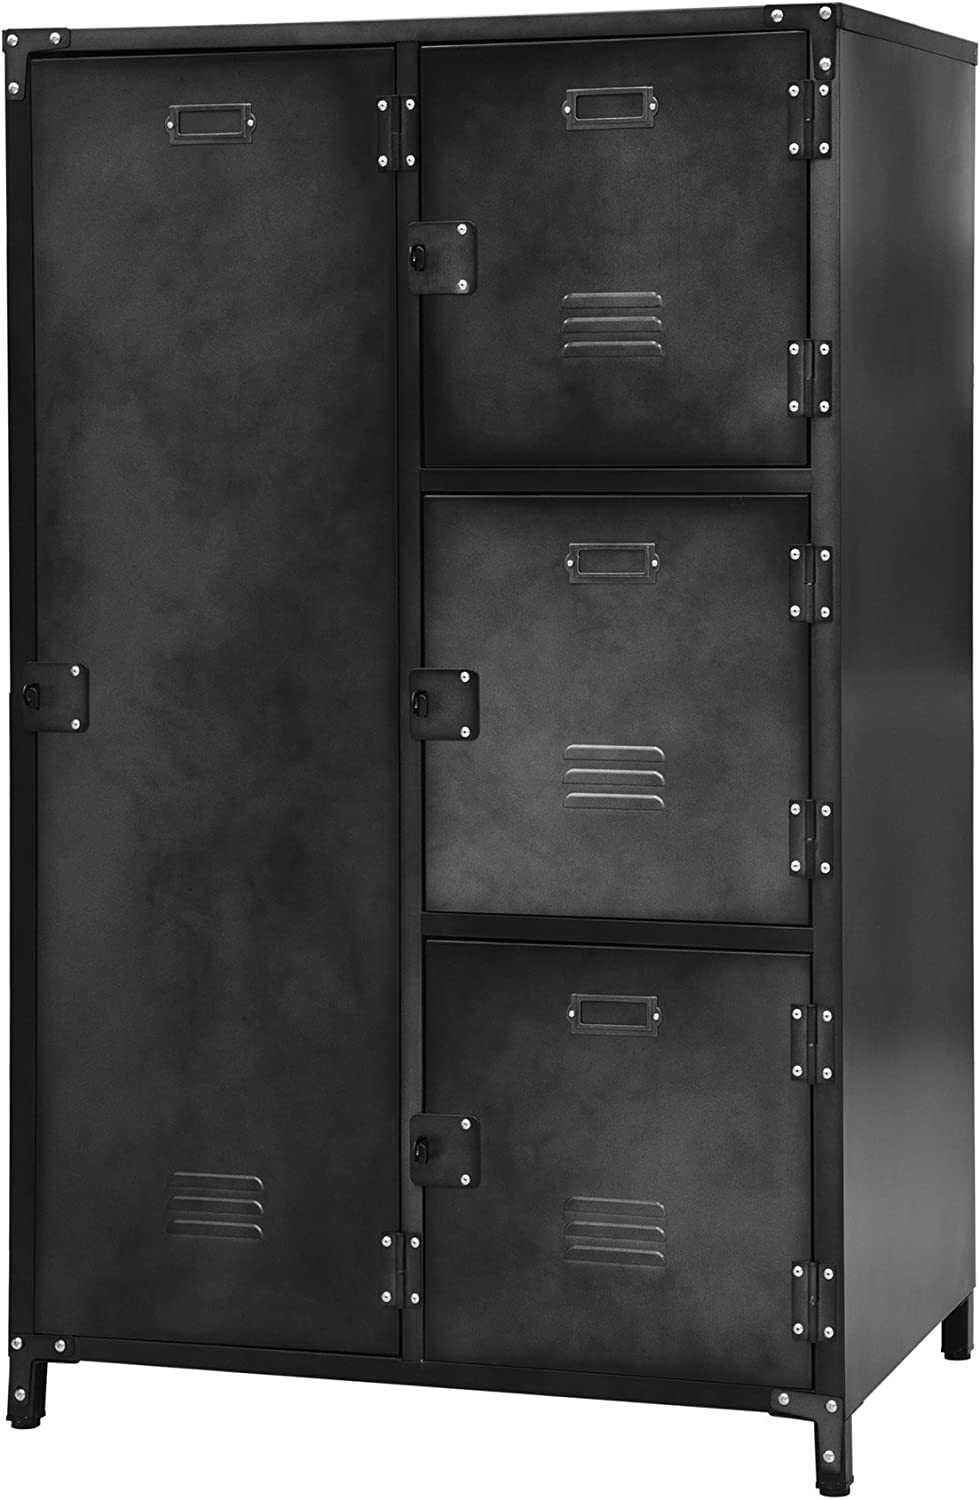 Allspace 4 Door Wardrobe Steel Storage Locker with Dark Weathered Finish -240038